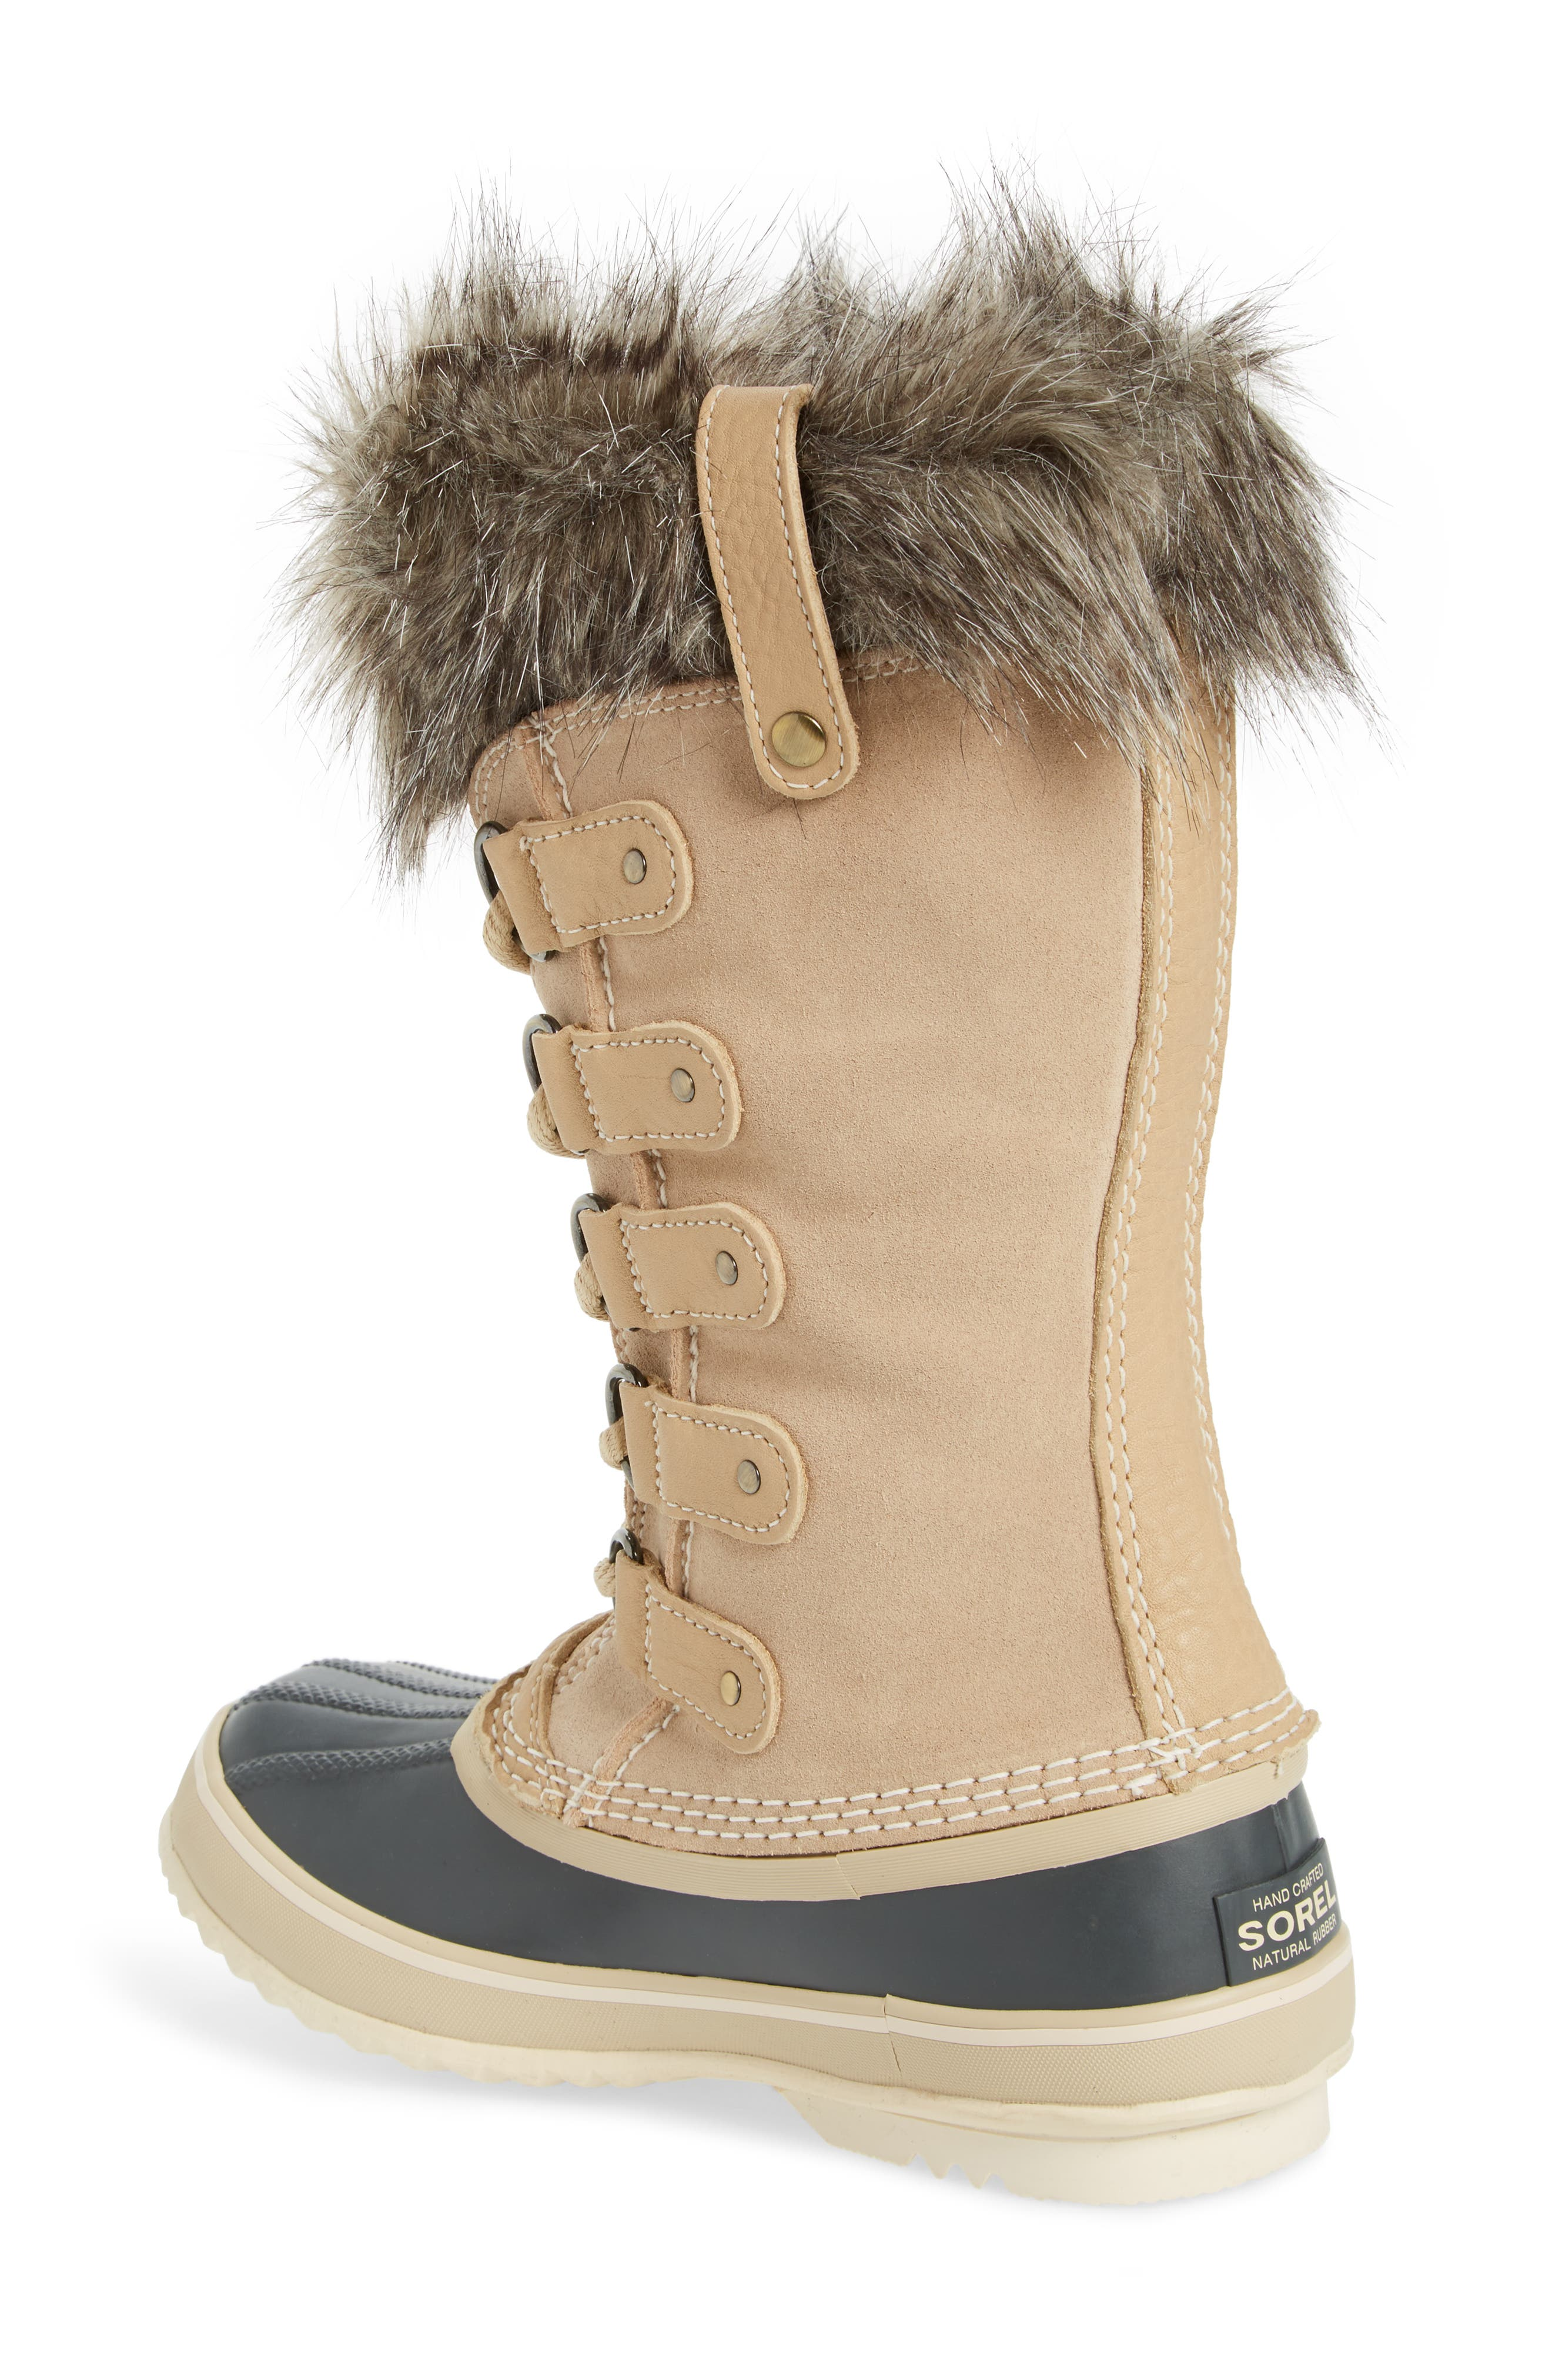 Alternate Image 2  - SOREL 'Joan of Arctic' Waterproof Snow Boot